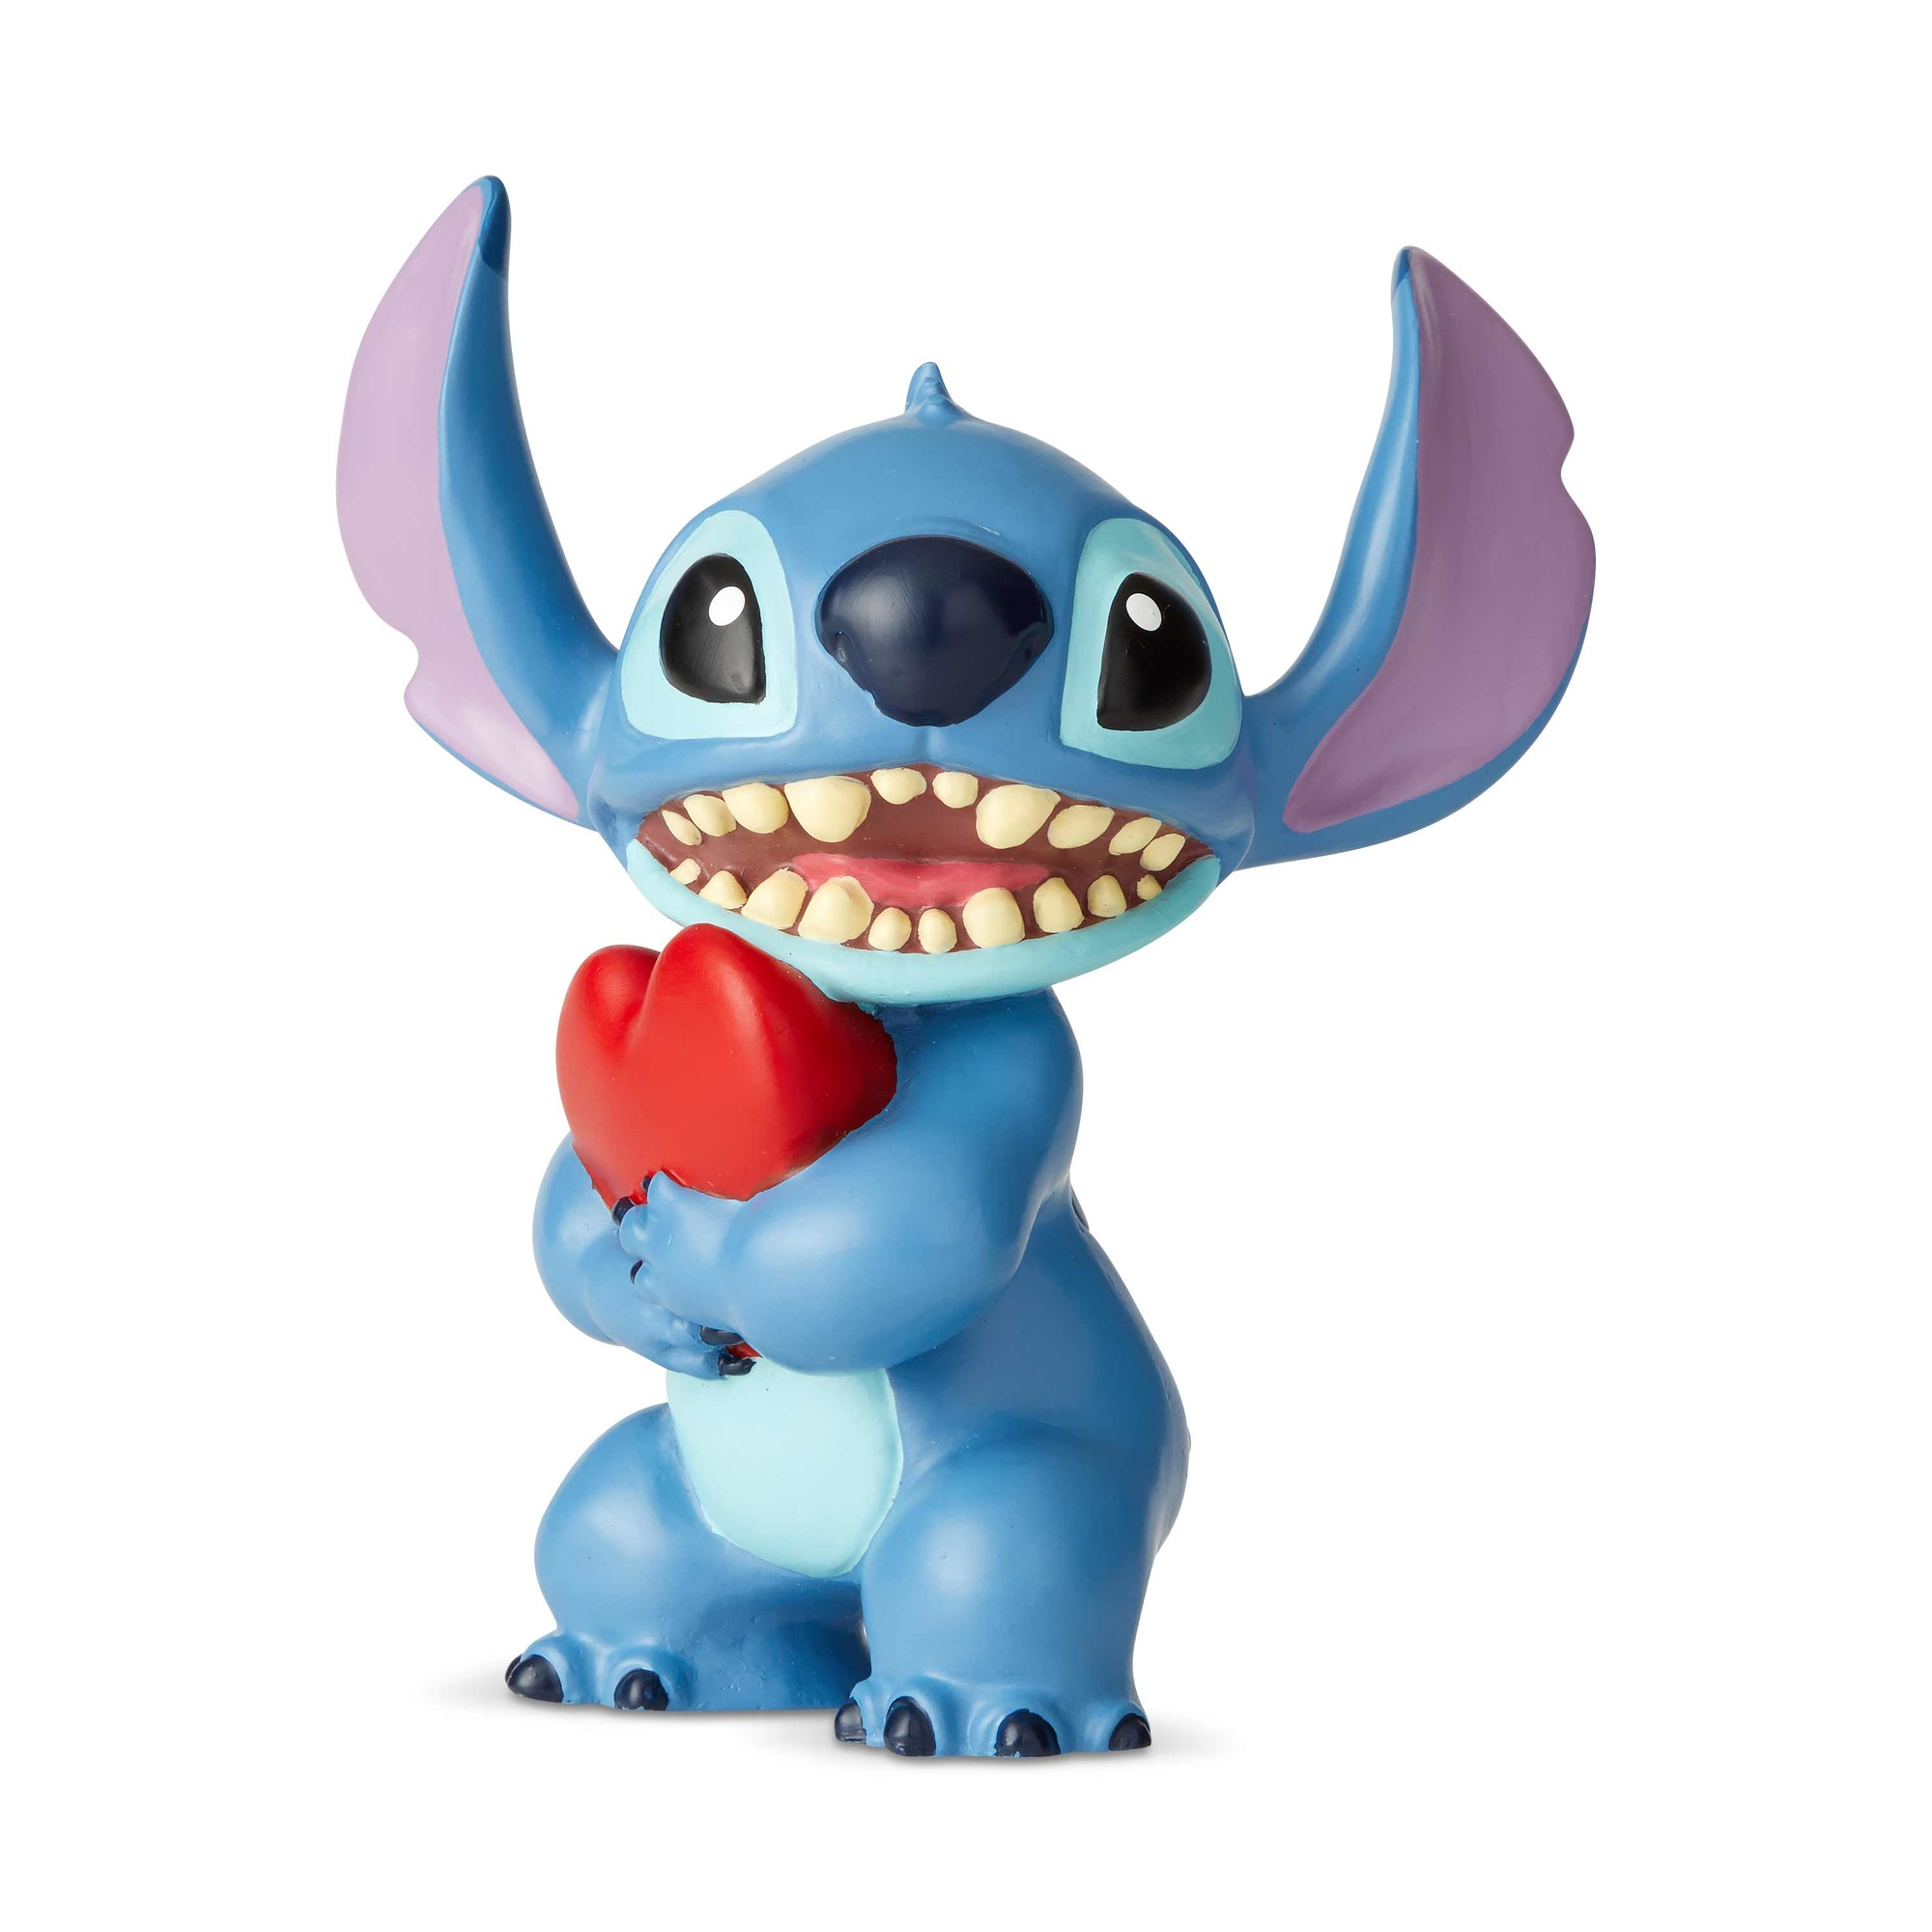 Disney Showcase Lilo & Stitch with Heart Figure